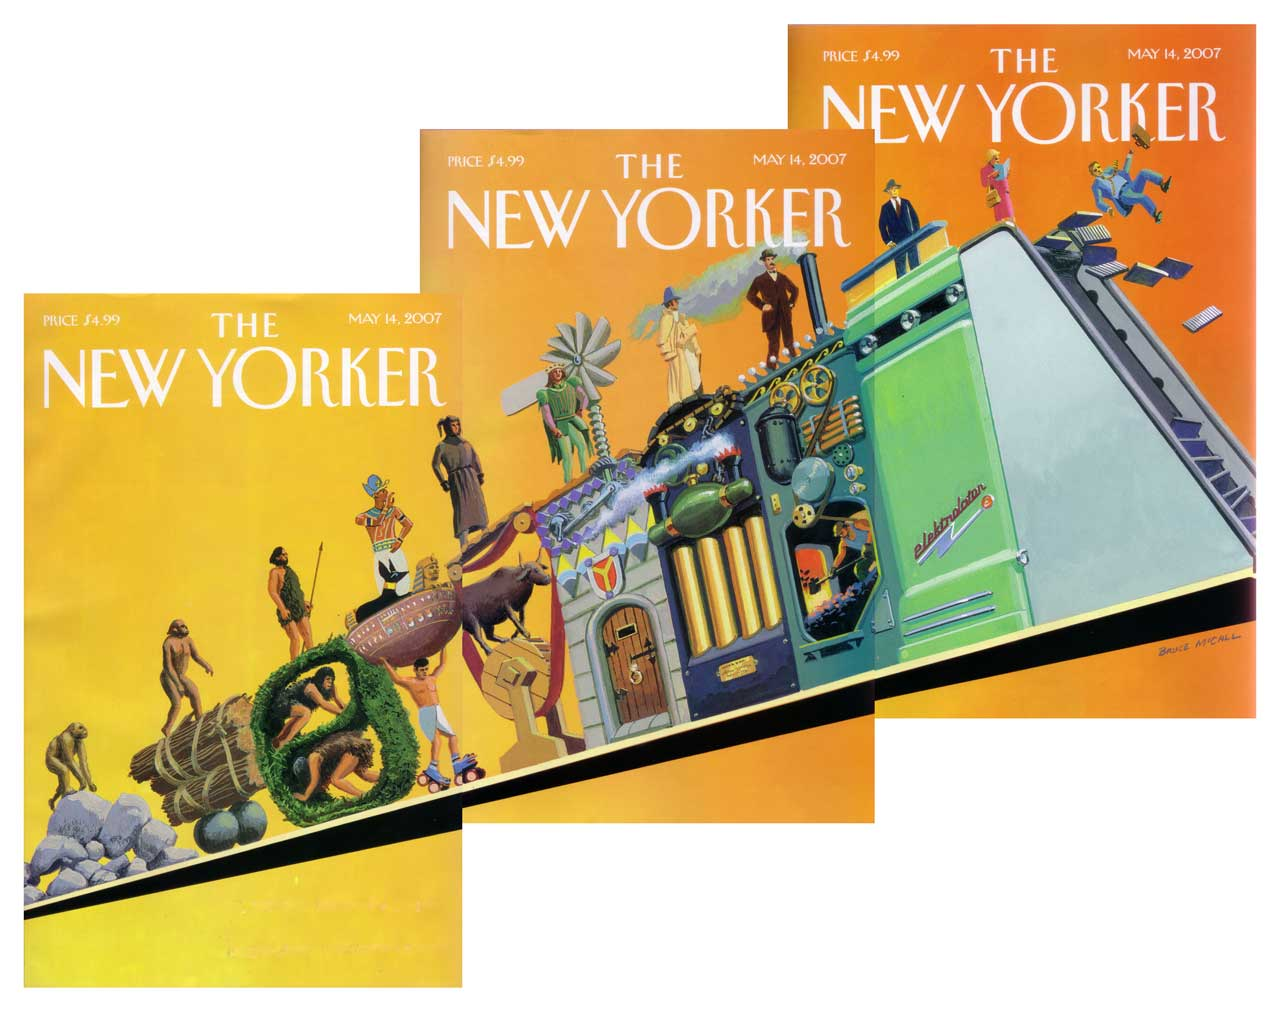 New Yorkers Covers About Ascent Of Man >> Critical Section New Yorker 5 14 2007 The Ascent Of Man